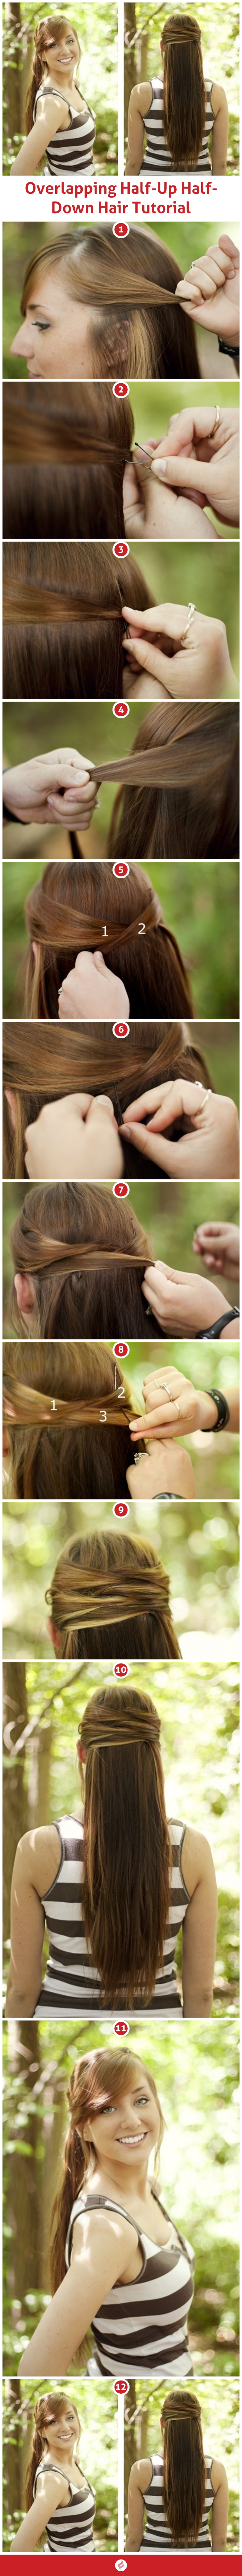 Overlapping Half-Up Half-Down Hair Tutorial - Fotoplot - Photosets Done Right